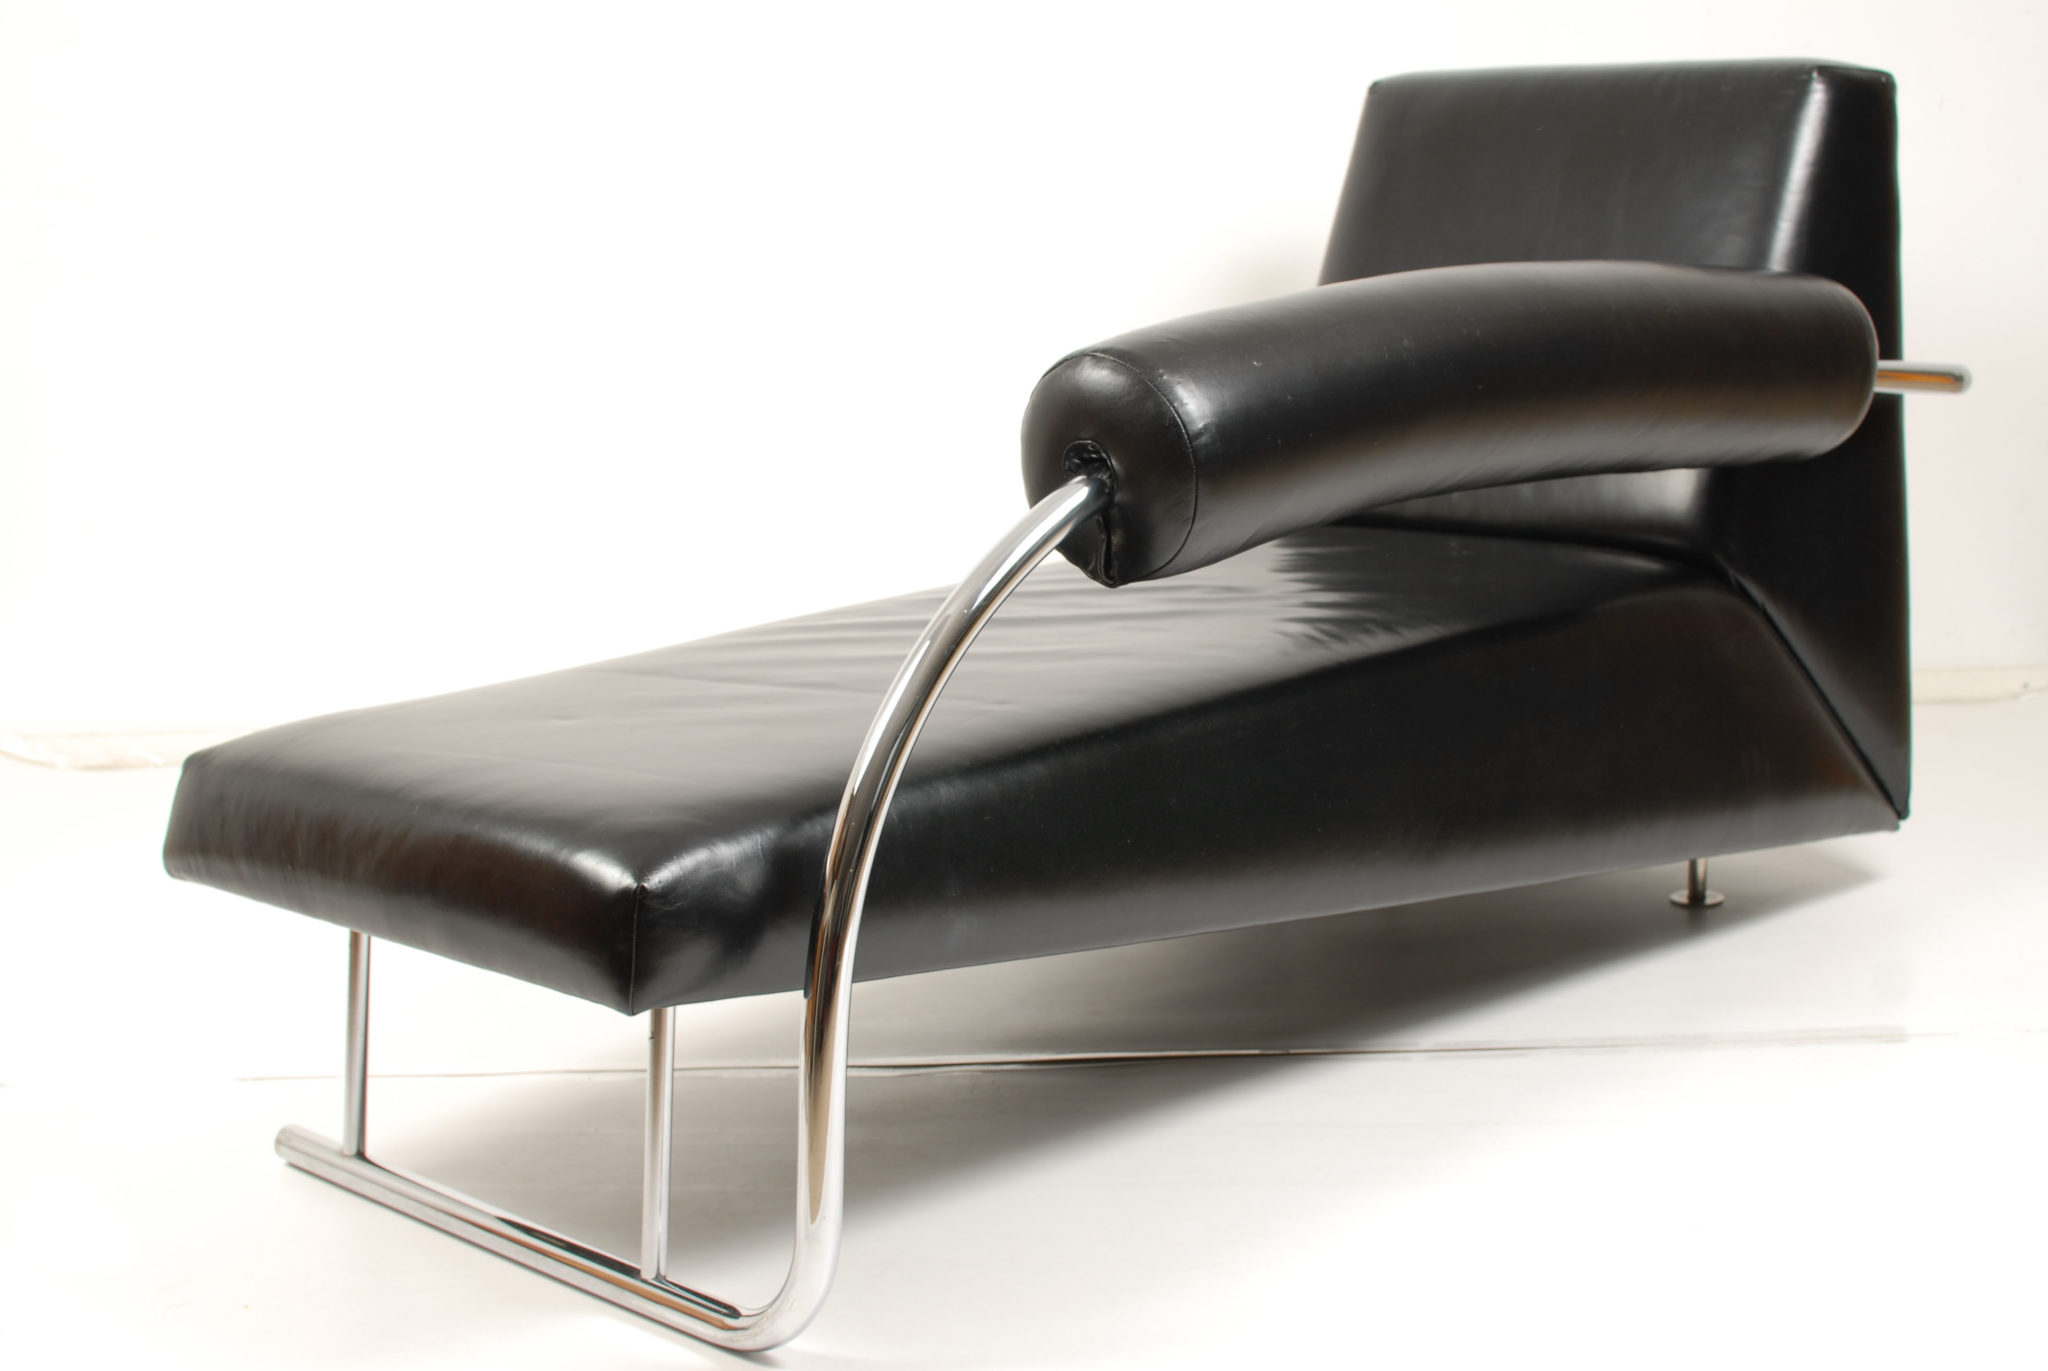 Chaise Longue Tweedehands Karel Doorman Chaise Longue By Rob Eckhardt Howaboutout Vintage Furniture